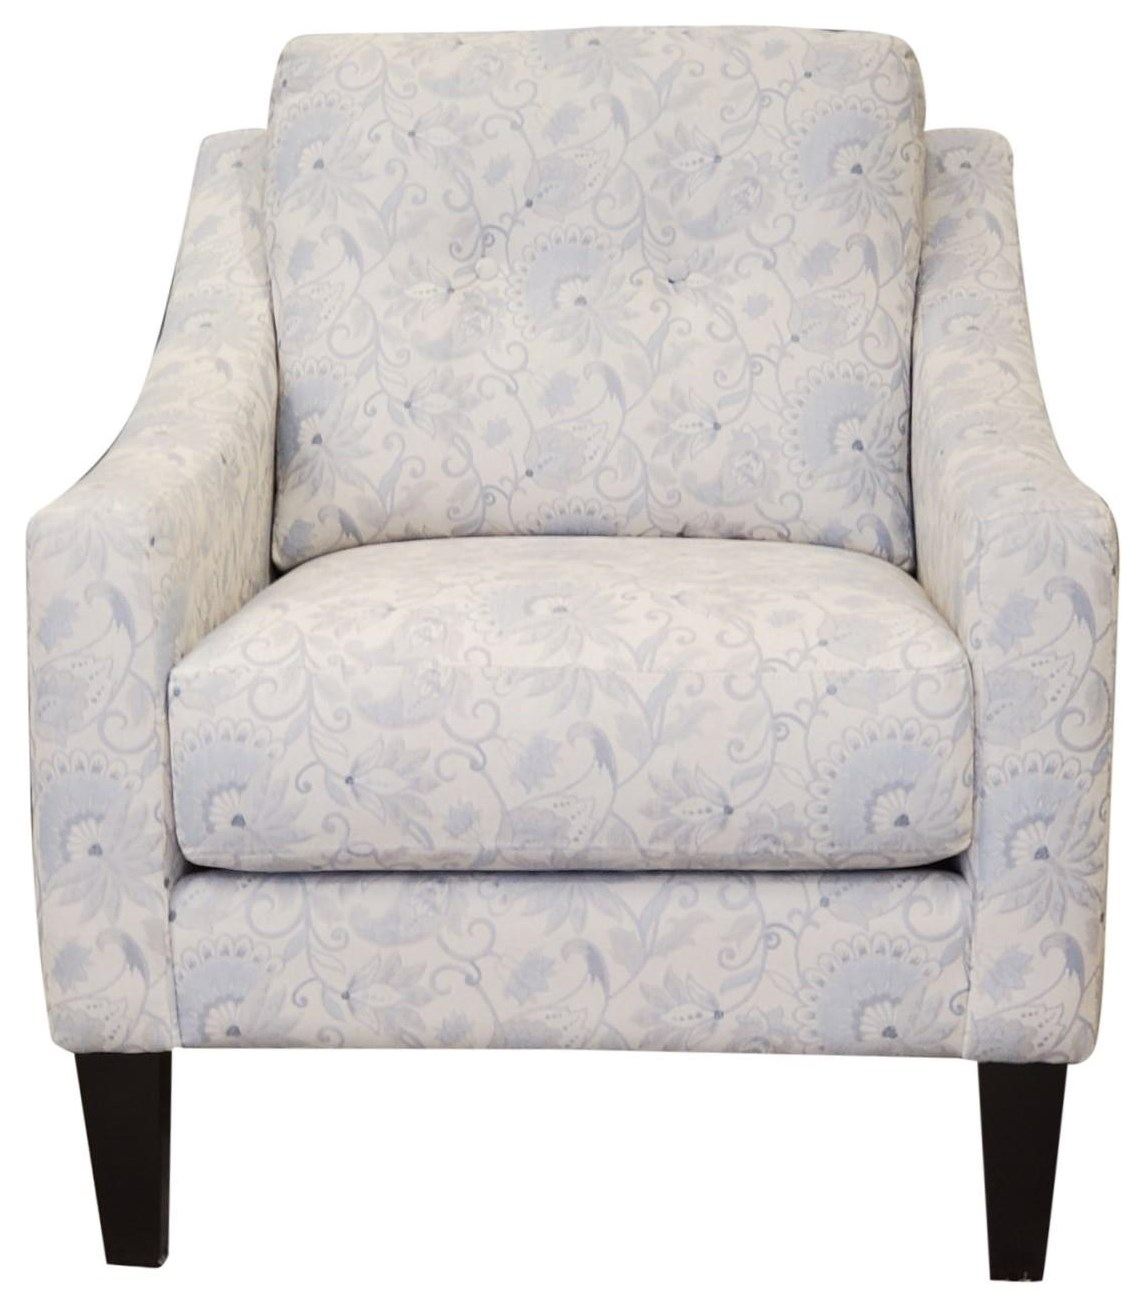 2467 Accent Chair by Decor-Rest at Upper Room Home Furnishings